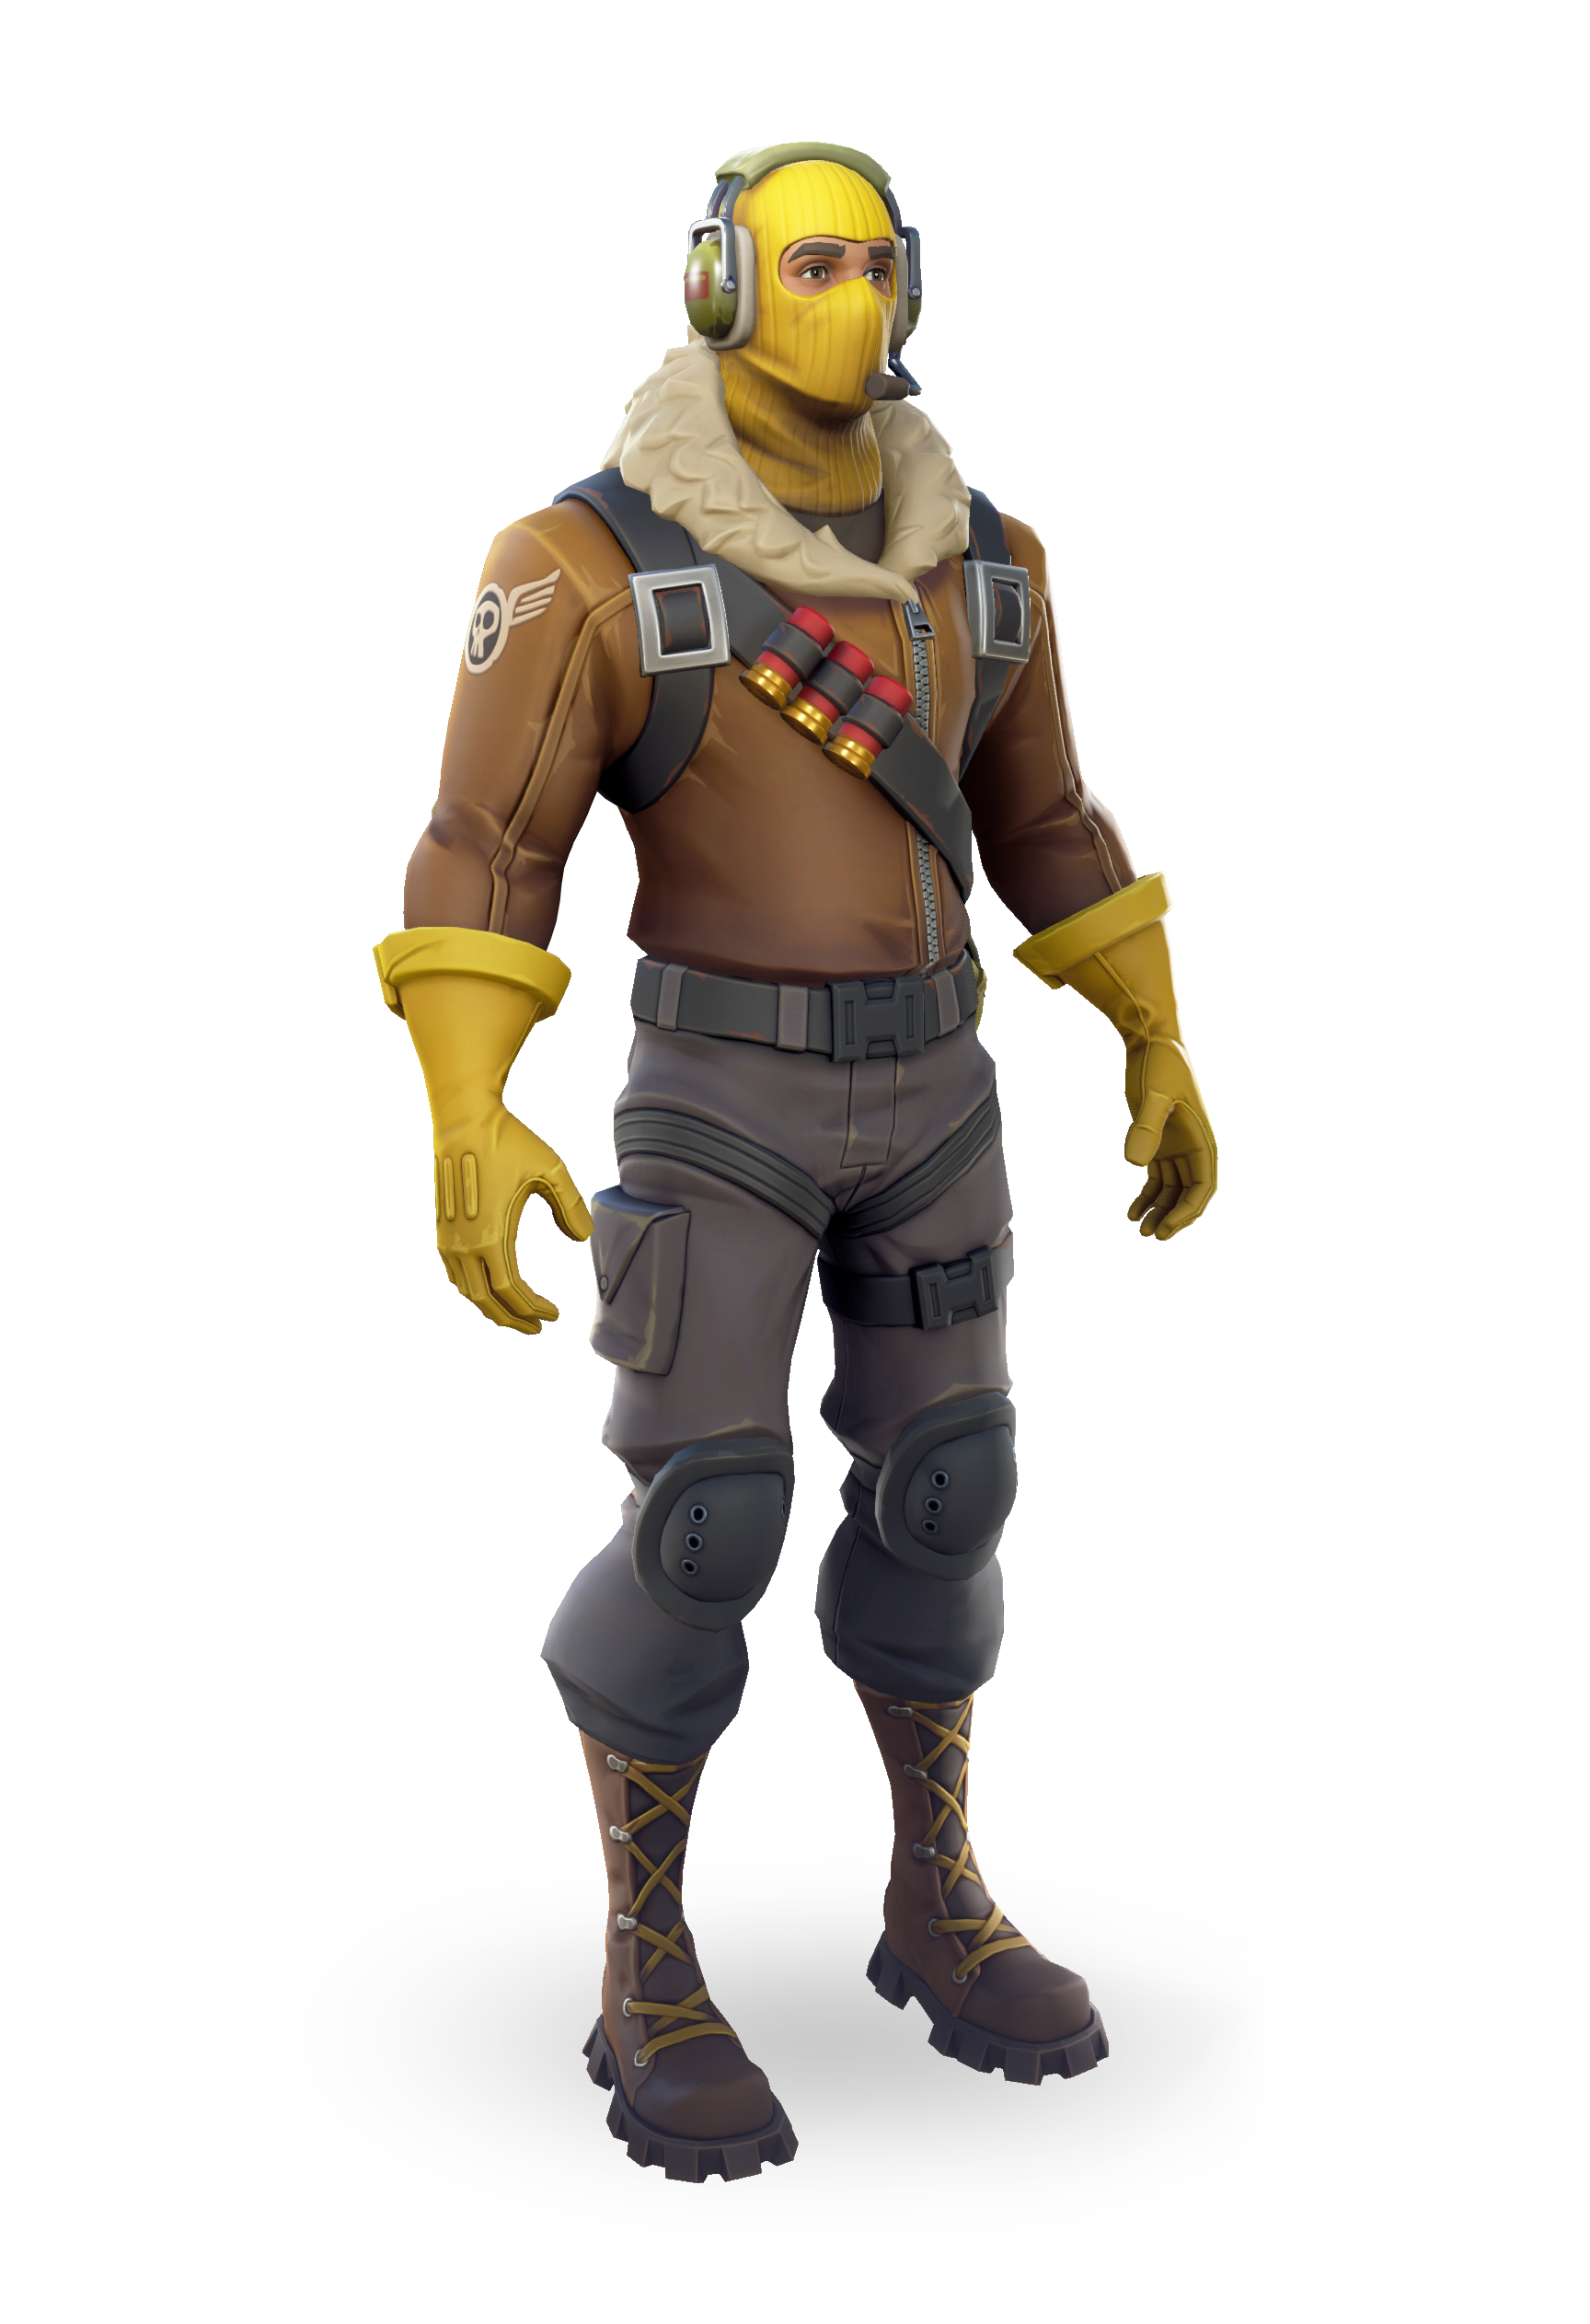 Fortnite season 3 png. Soldier ur skin stuffy